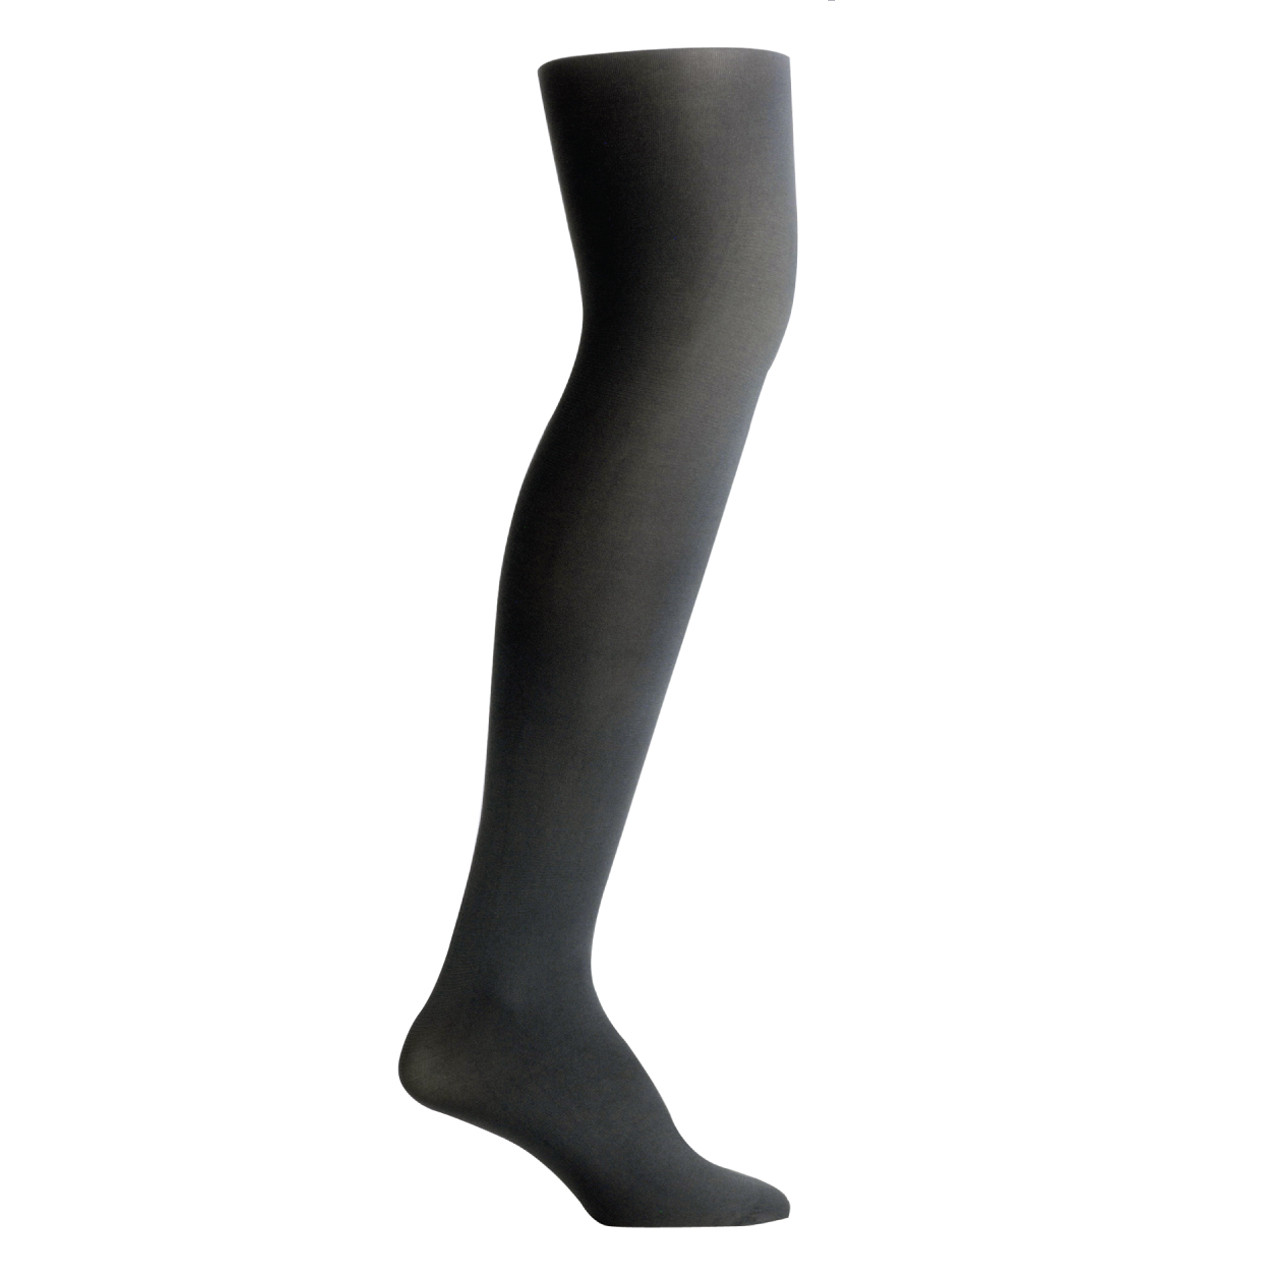 18fe227f1 ... Nylon Opaque Tights with Cotton Gusset - College Grey. Image 1